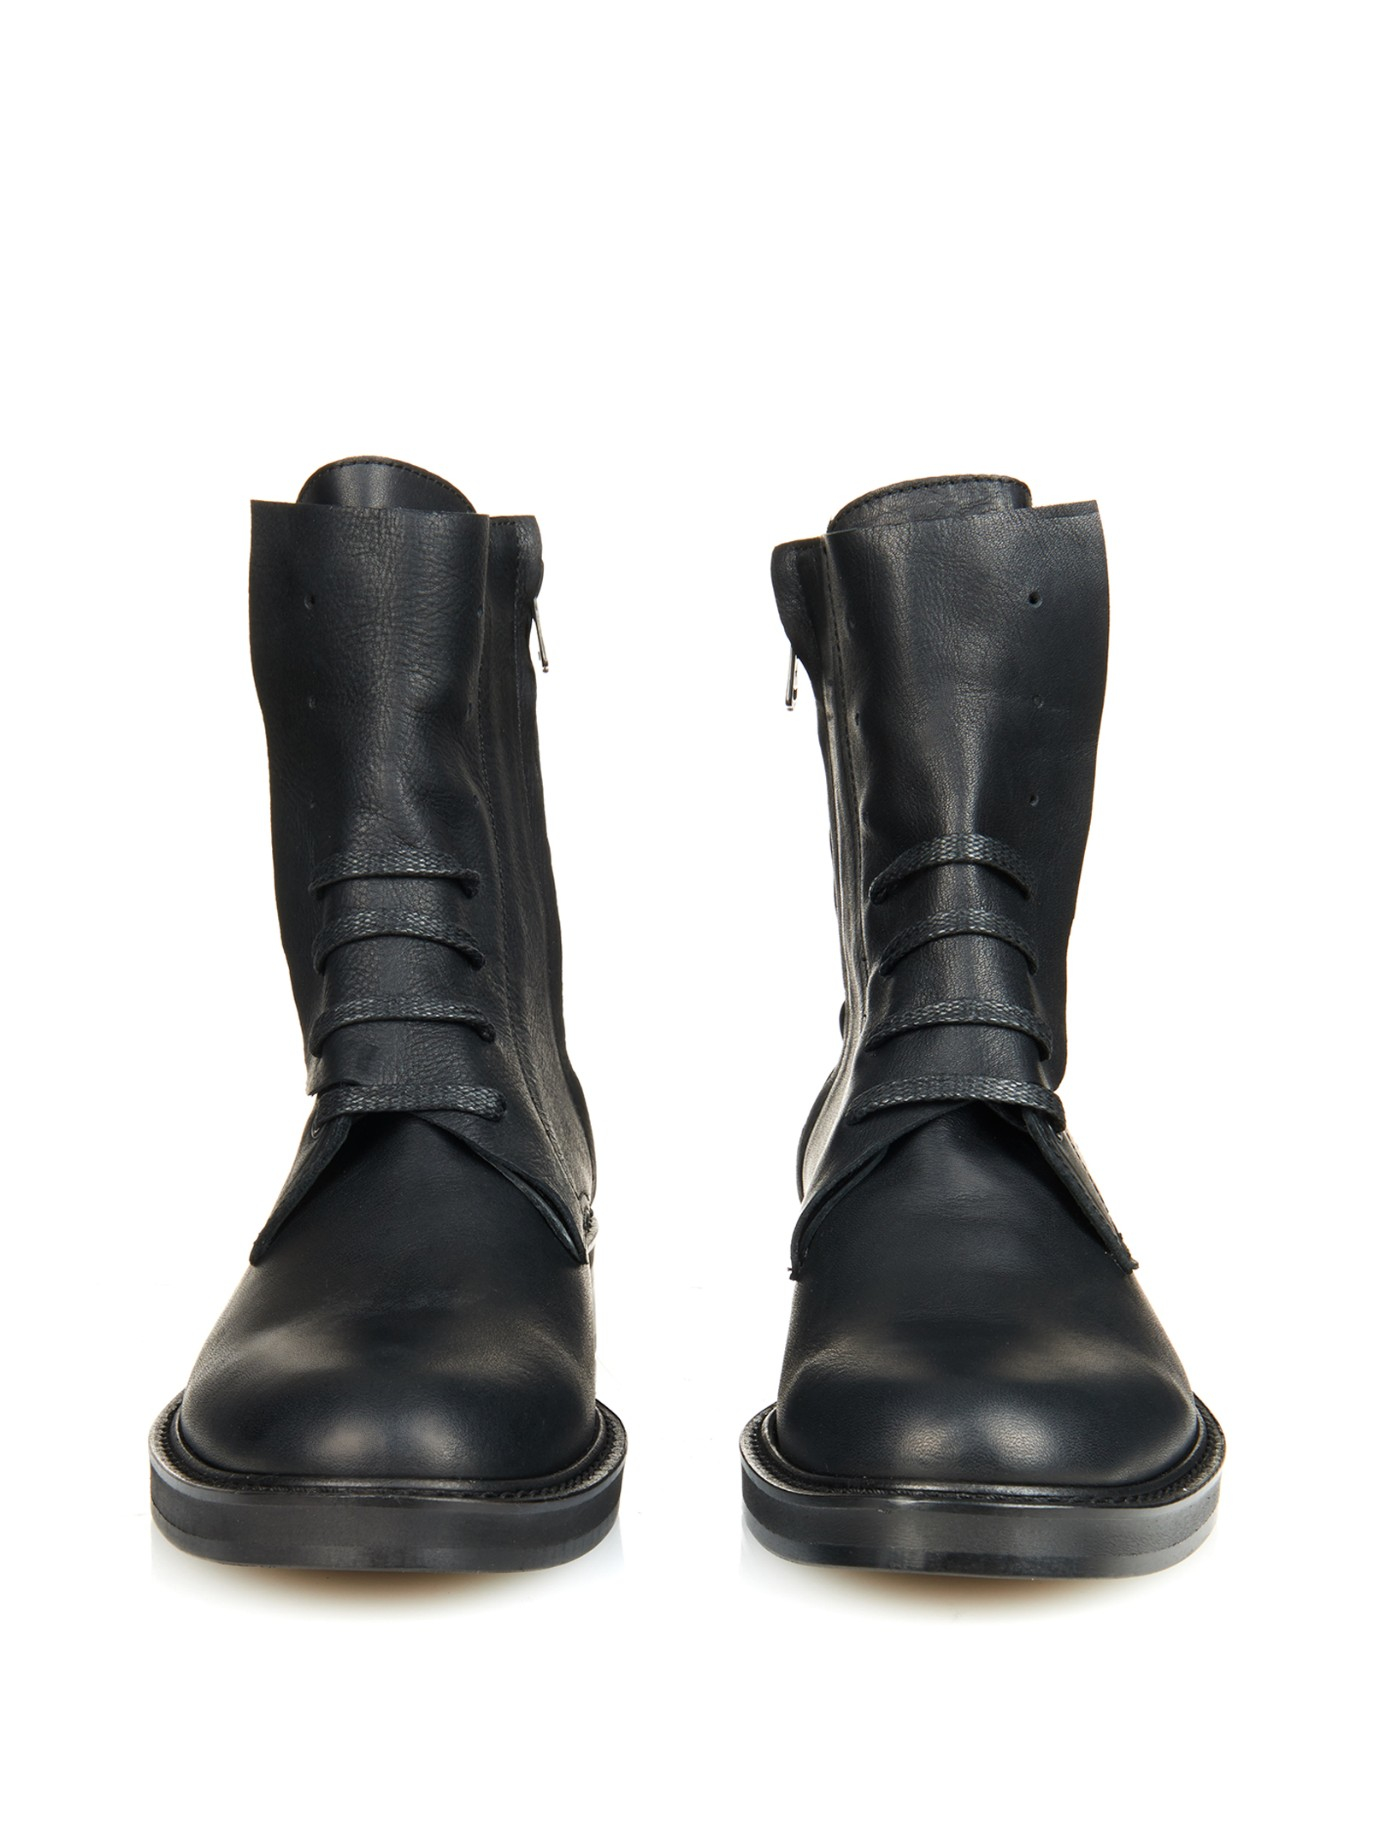 very cheap online Y's by Yohji Yamamoto Leather Mid-Calf Boots cheap sale 2014 unisex nicekicks sale online clearance get authentic sale extremely 4UE4cT4t